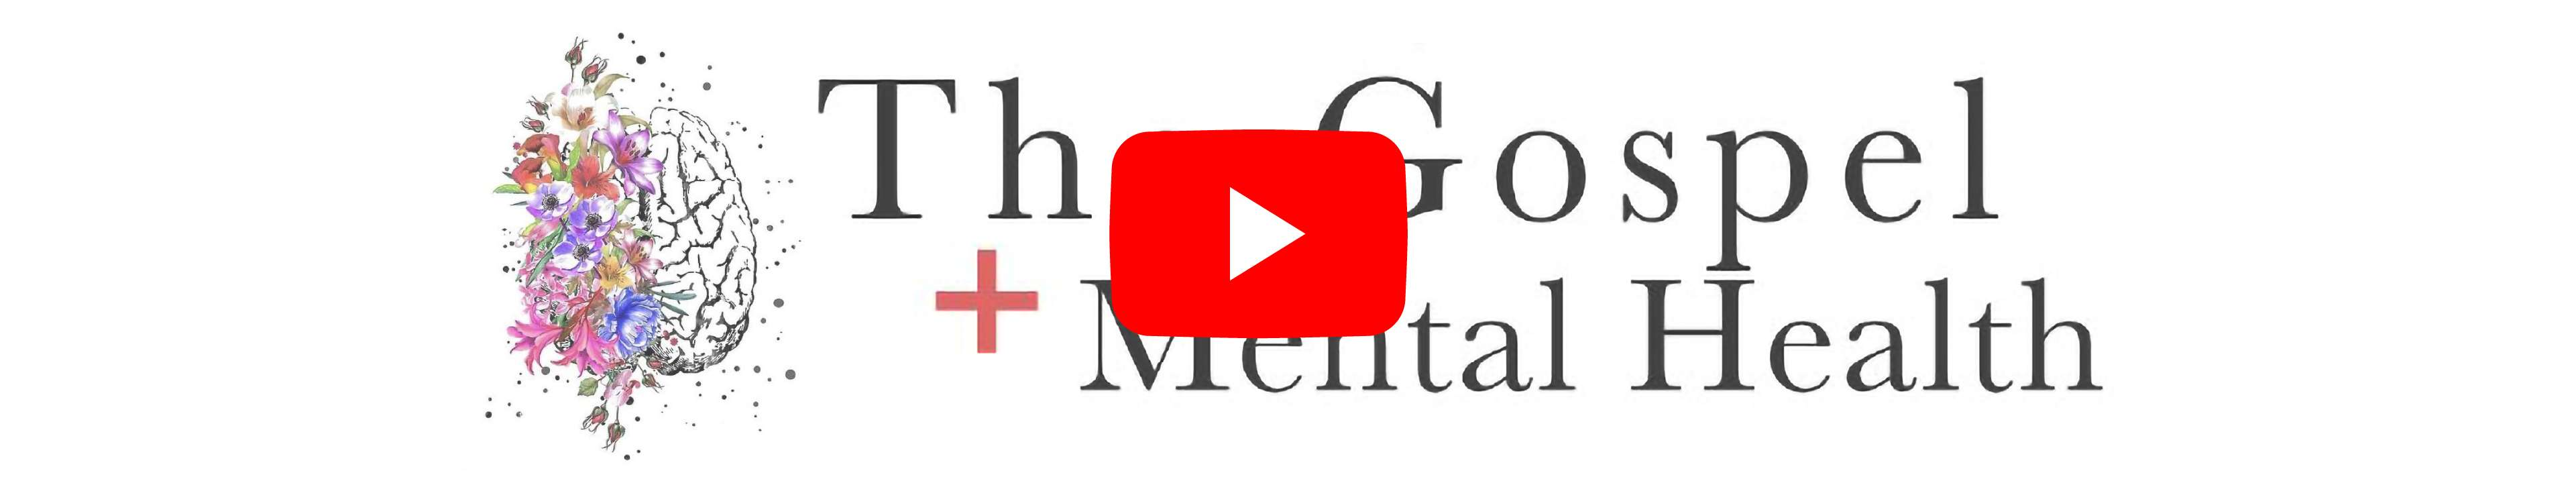 the-gospel-and-mental-health-10brd-dq2020_rick-mckinniss-slim-banner-youtube2x-100